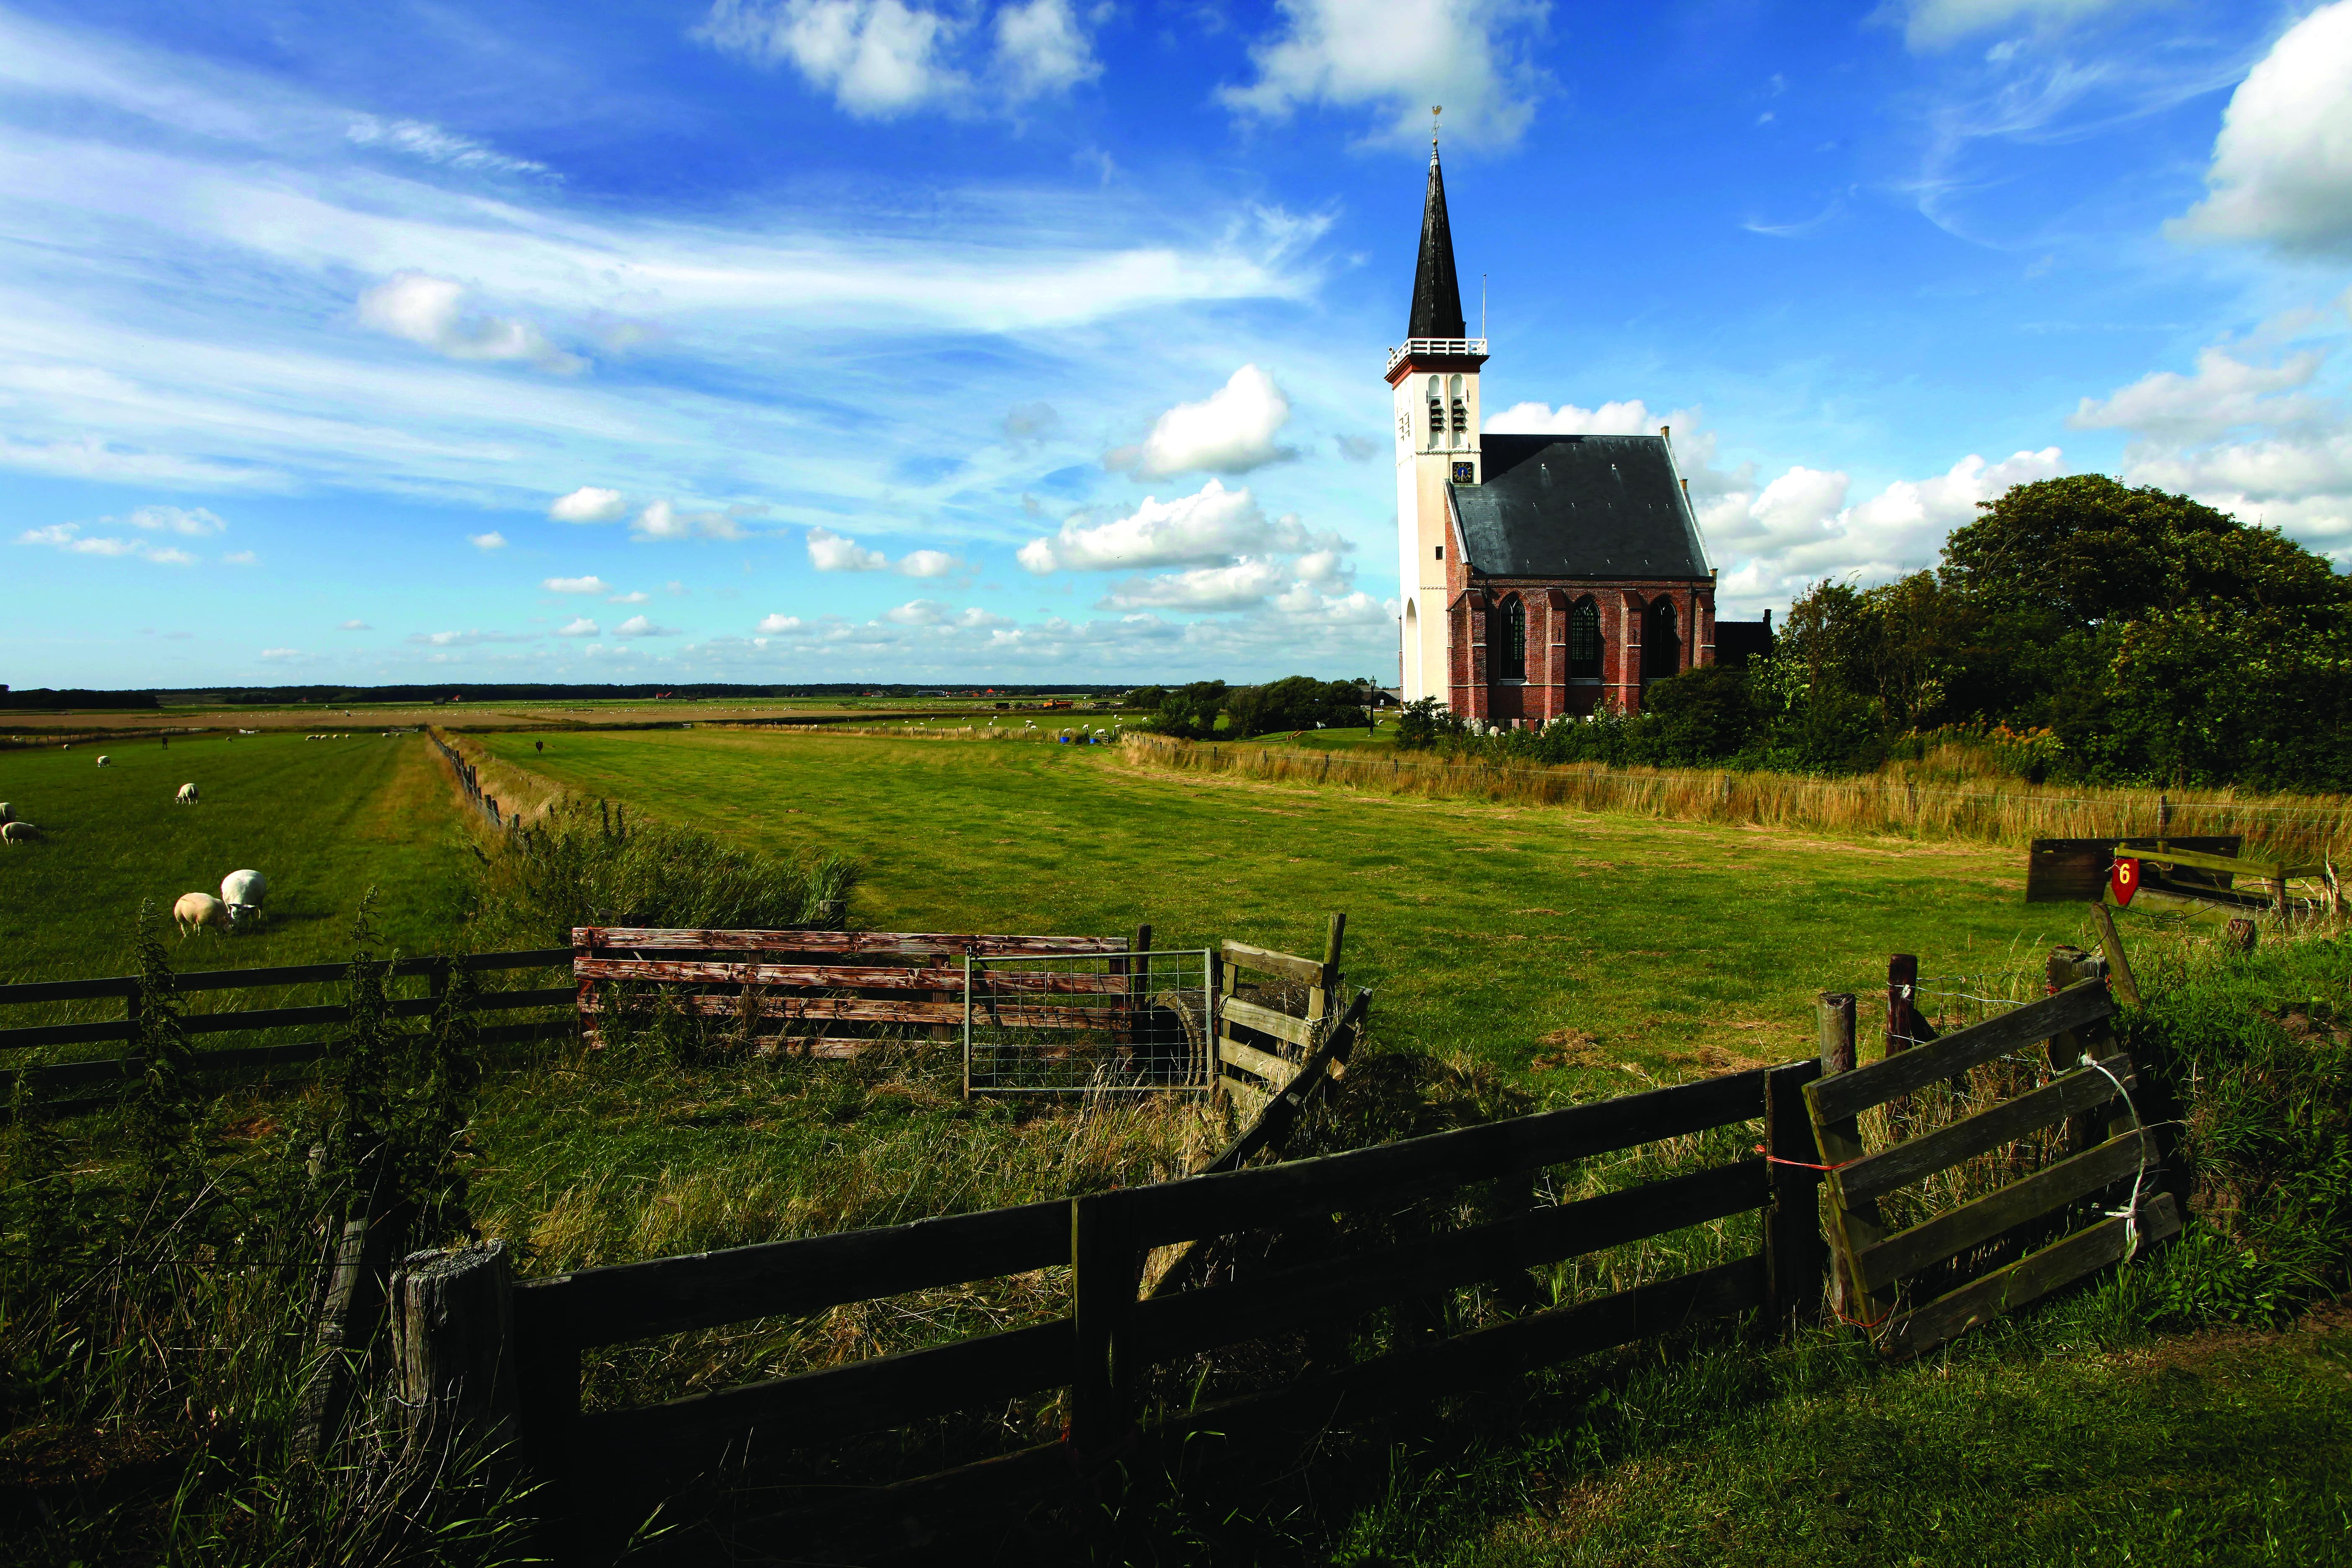 View of Texel, one of the Frisian Islands